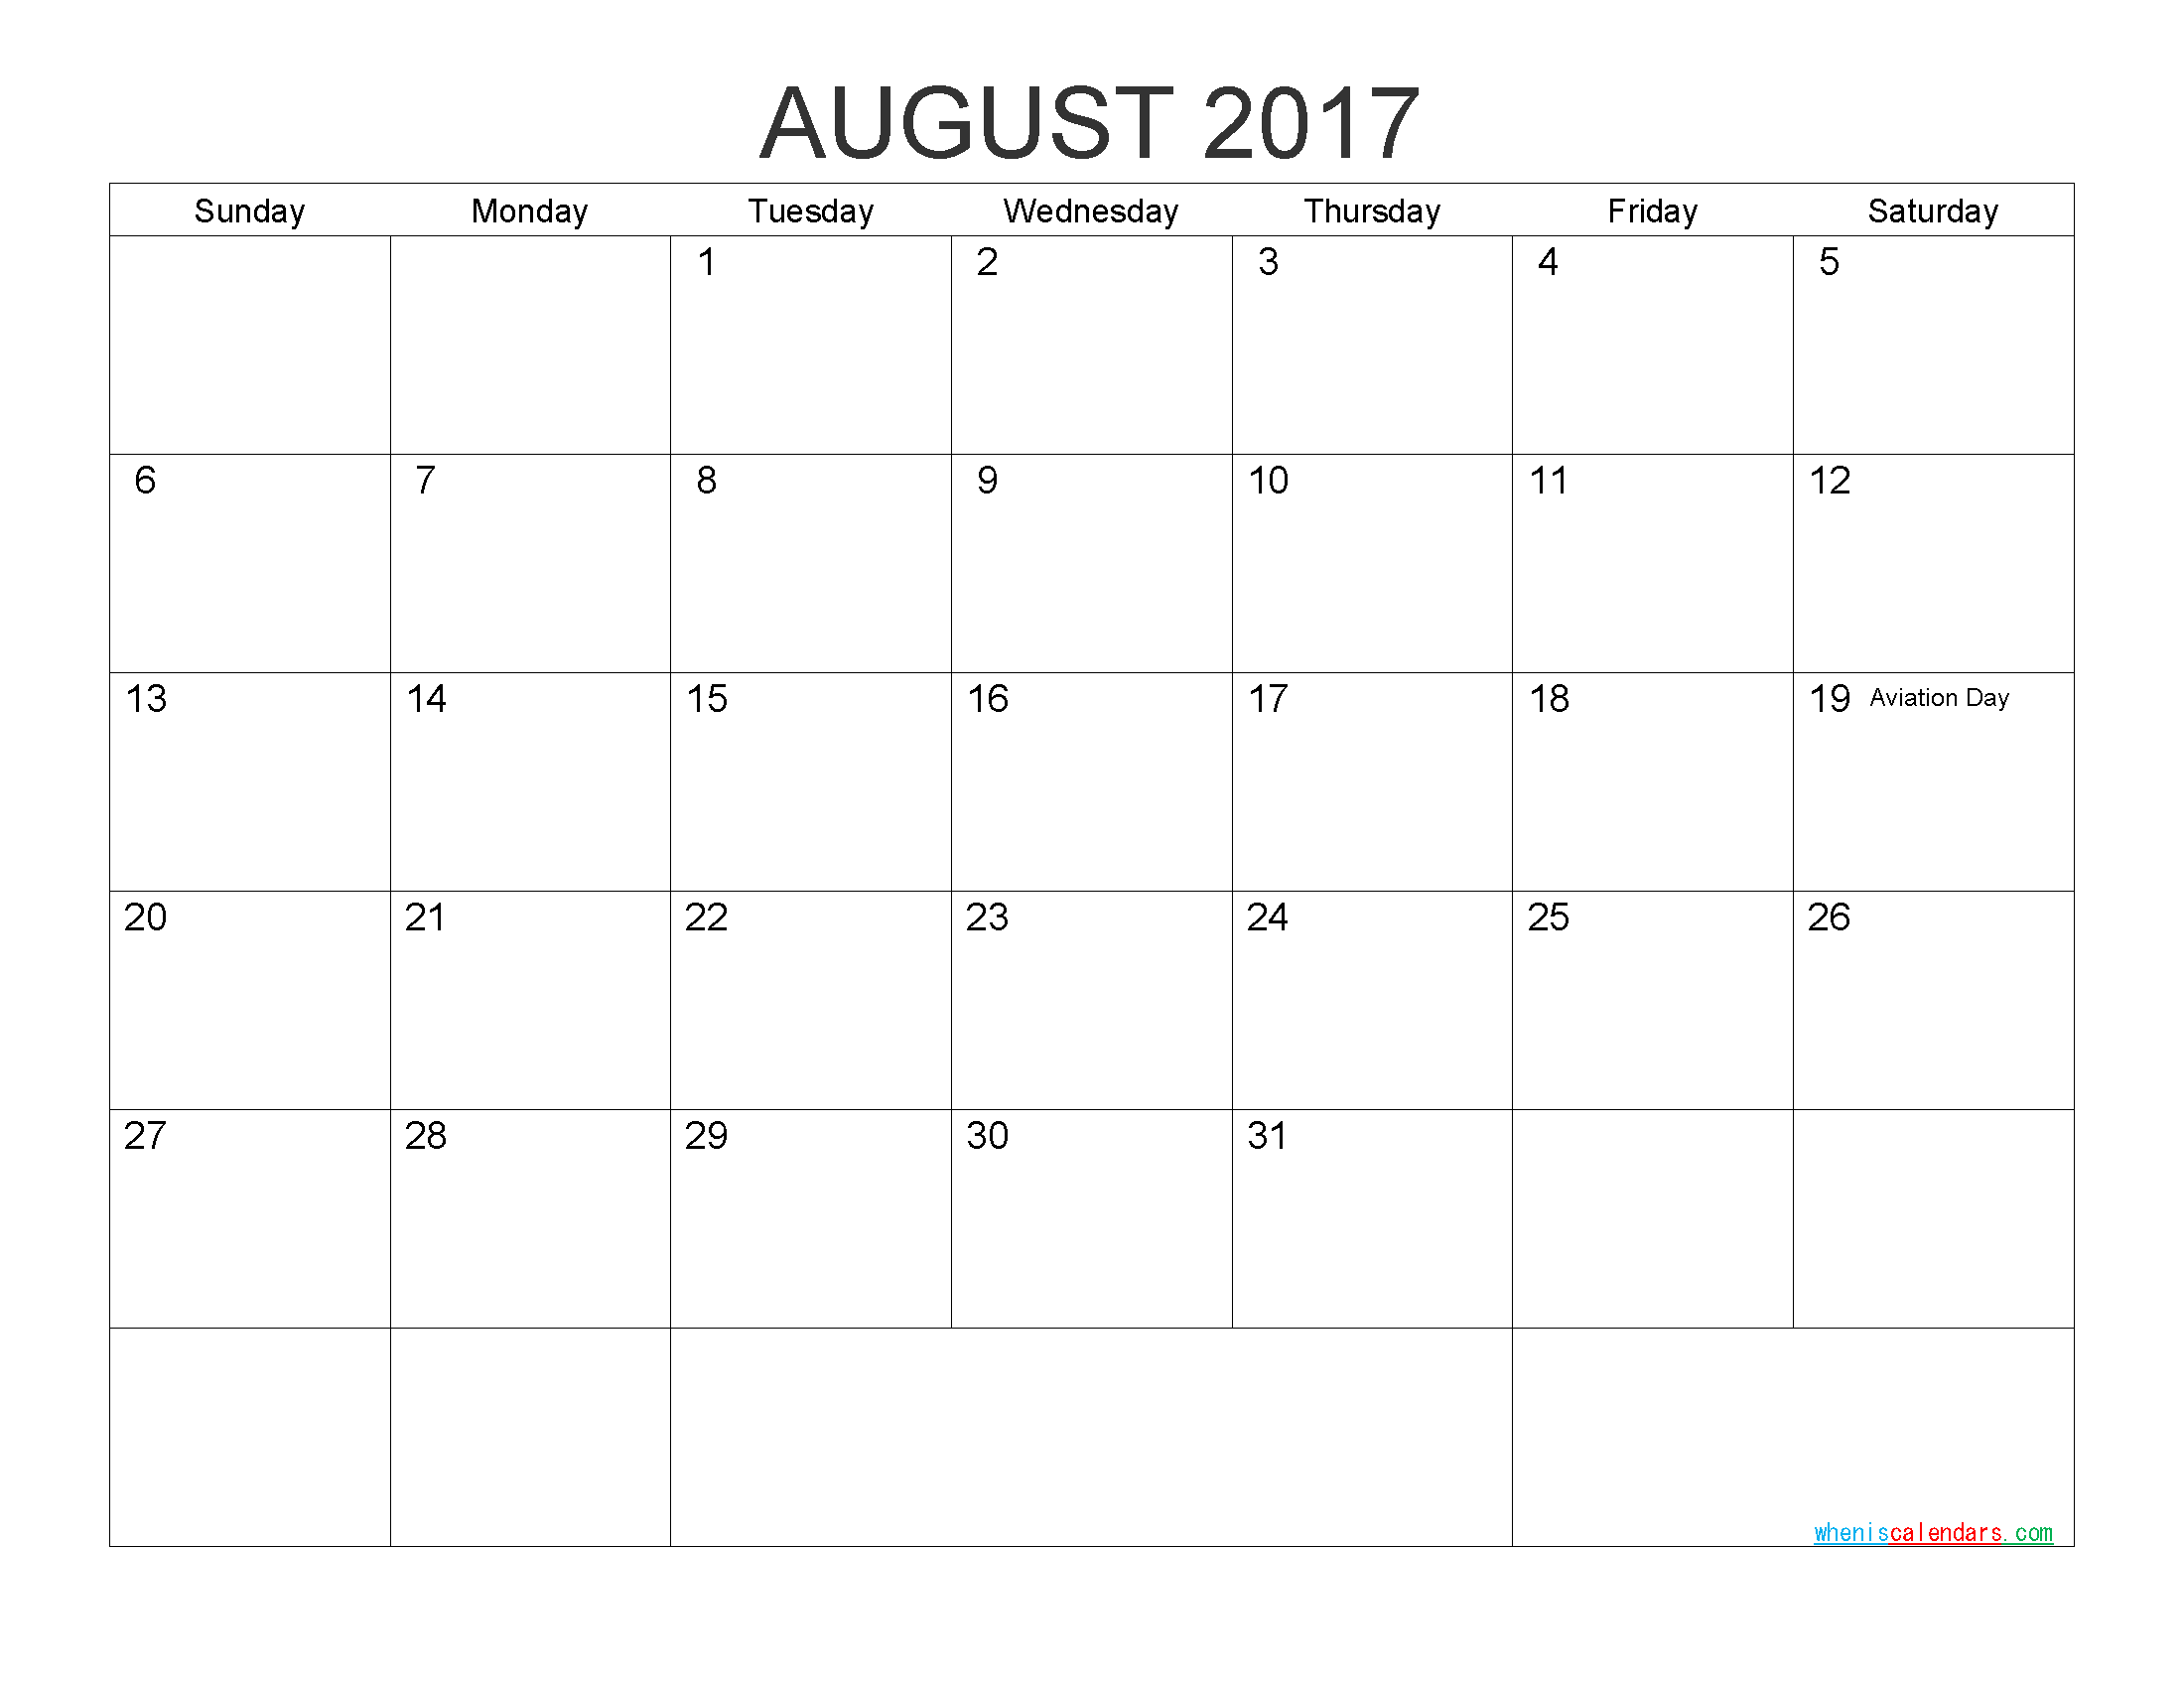 Download Free Calendar August 2017 Printable Calendar with Holidays as PDF and Image